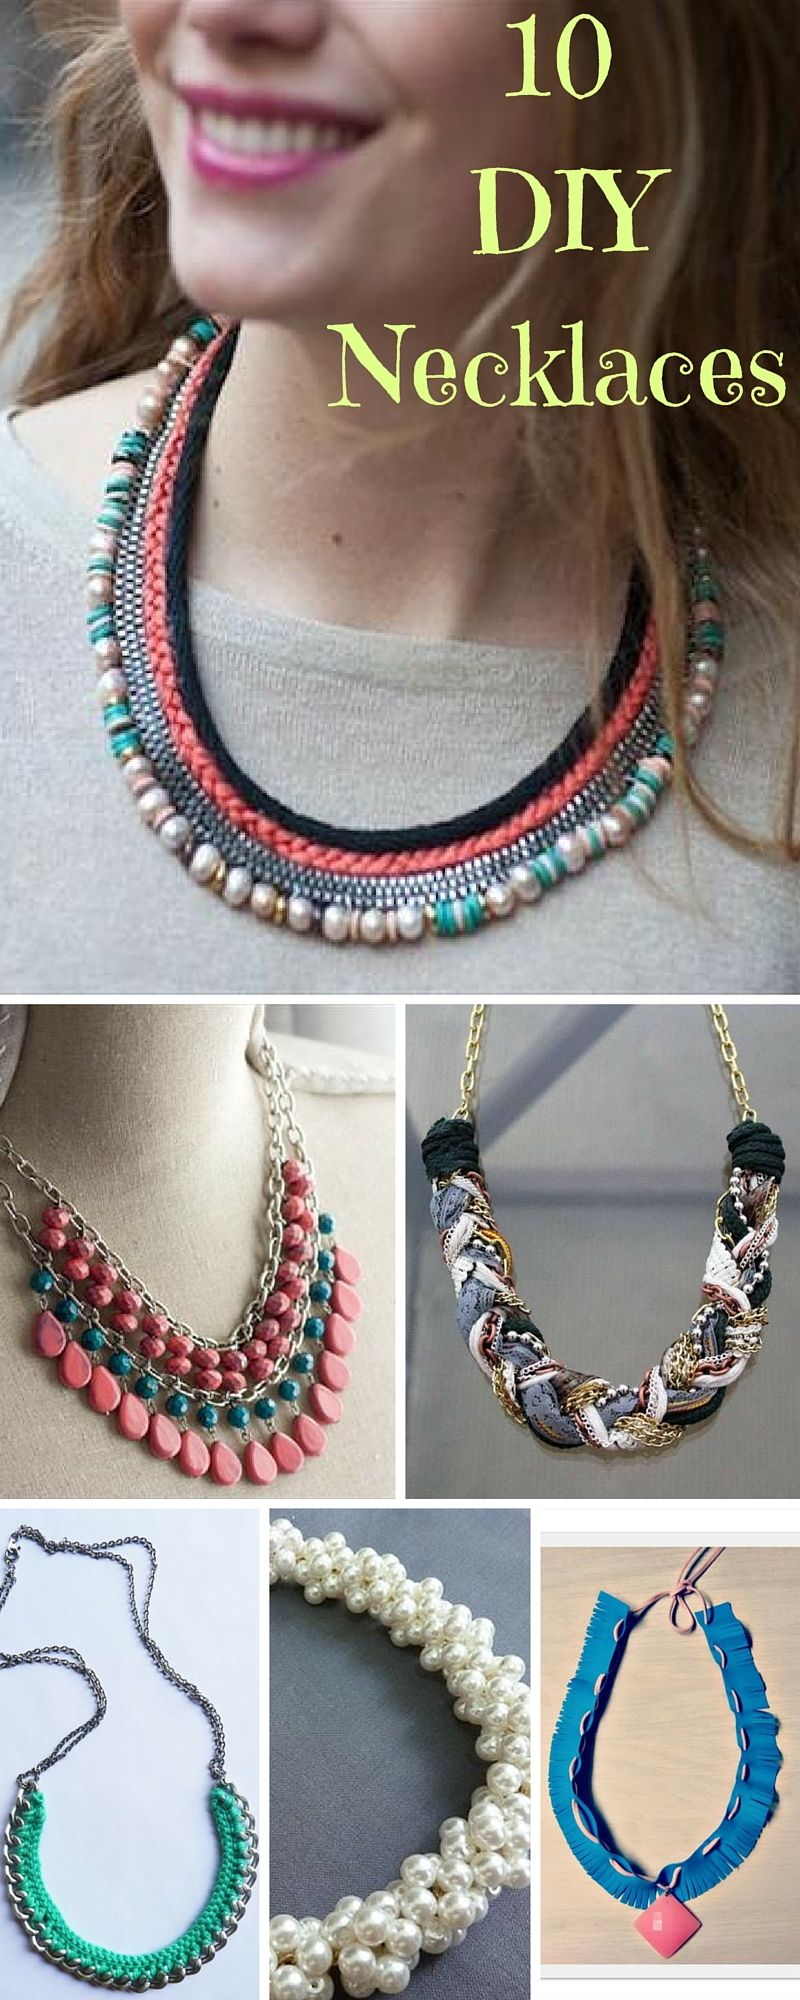 10 DIY Necklaces Tutorial - DIY Gift Ideas | DIY and Crafts